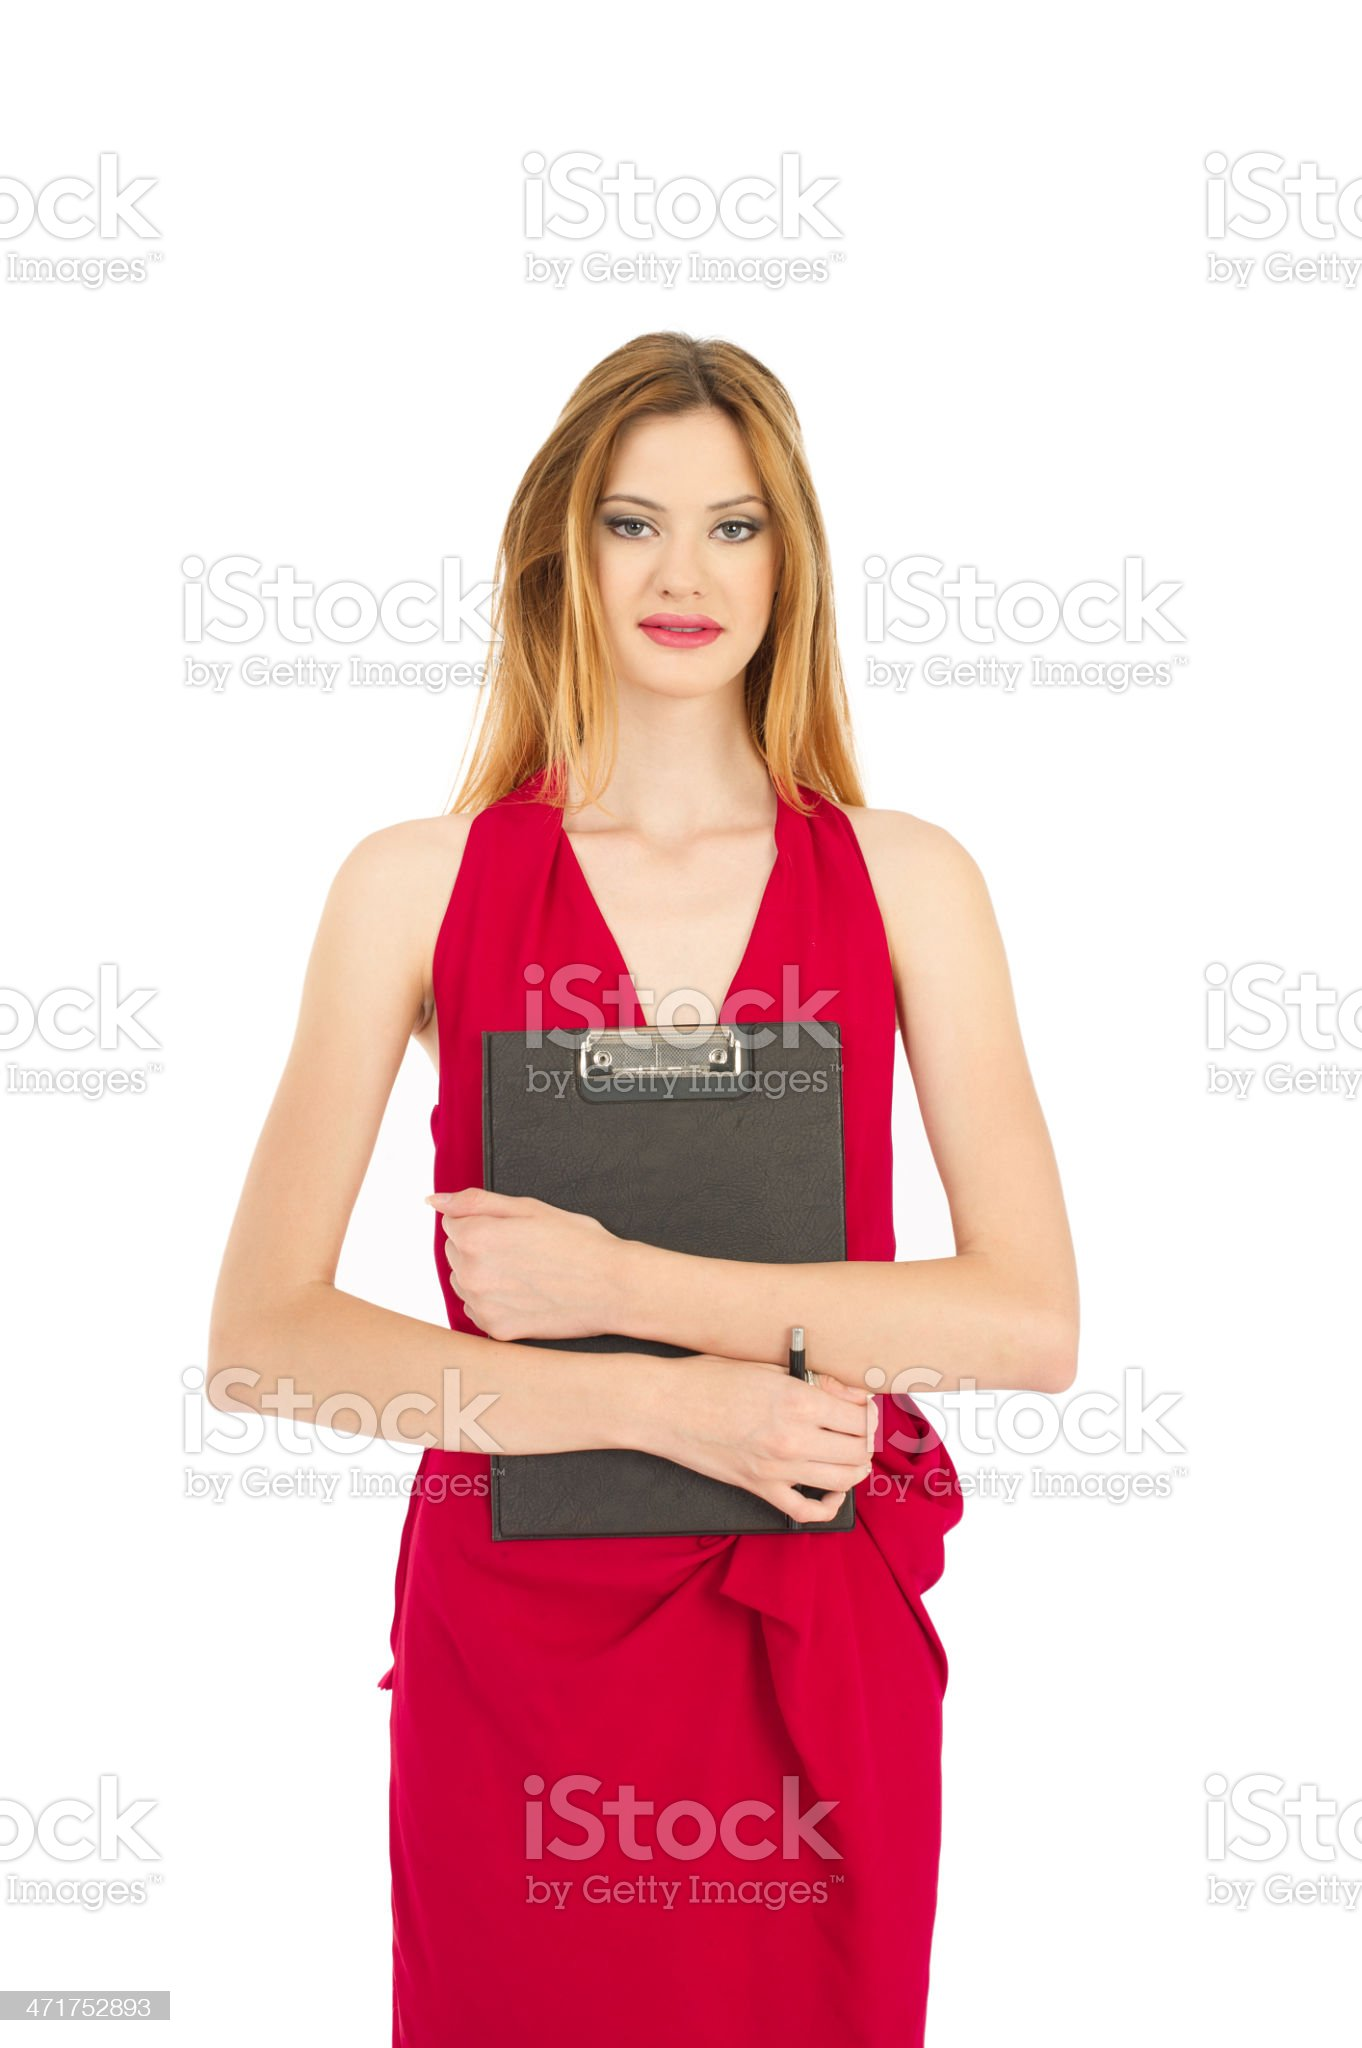 Businesswomen with red dress royalty-free stock photo